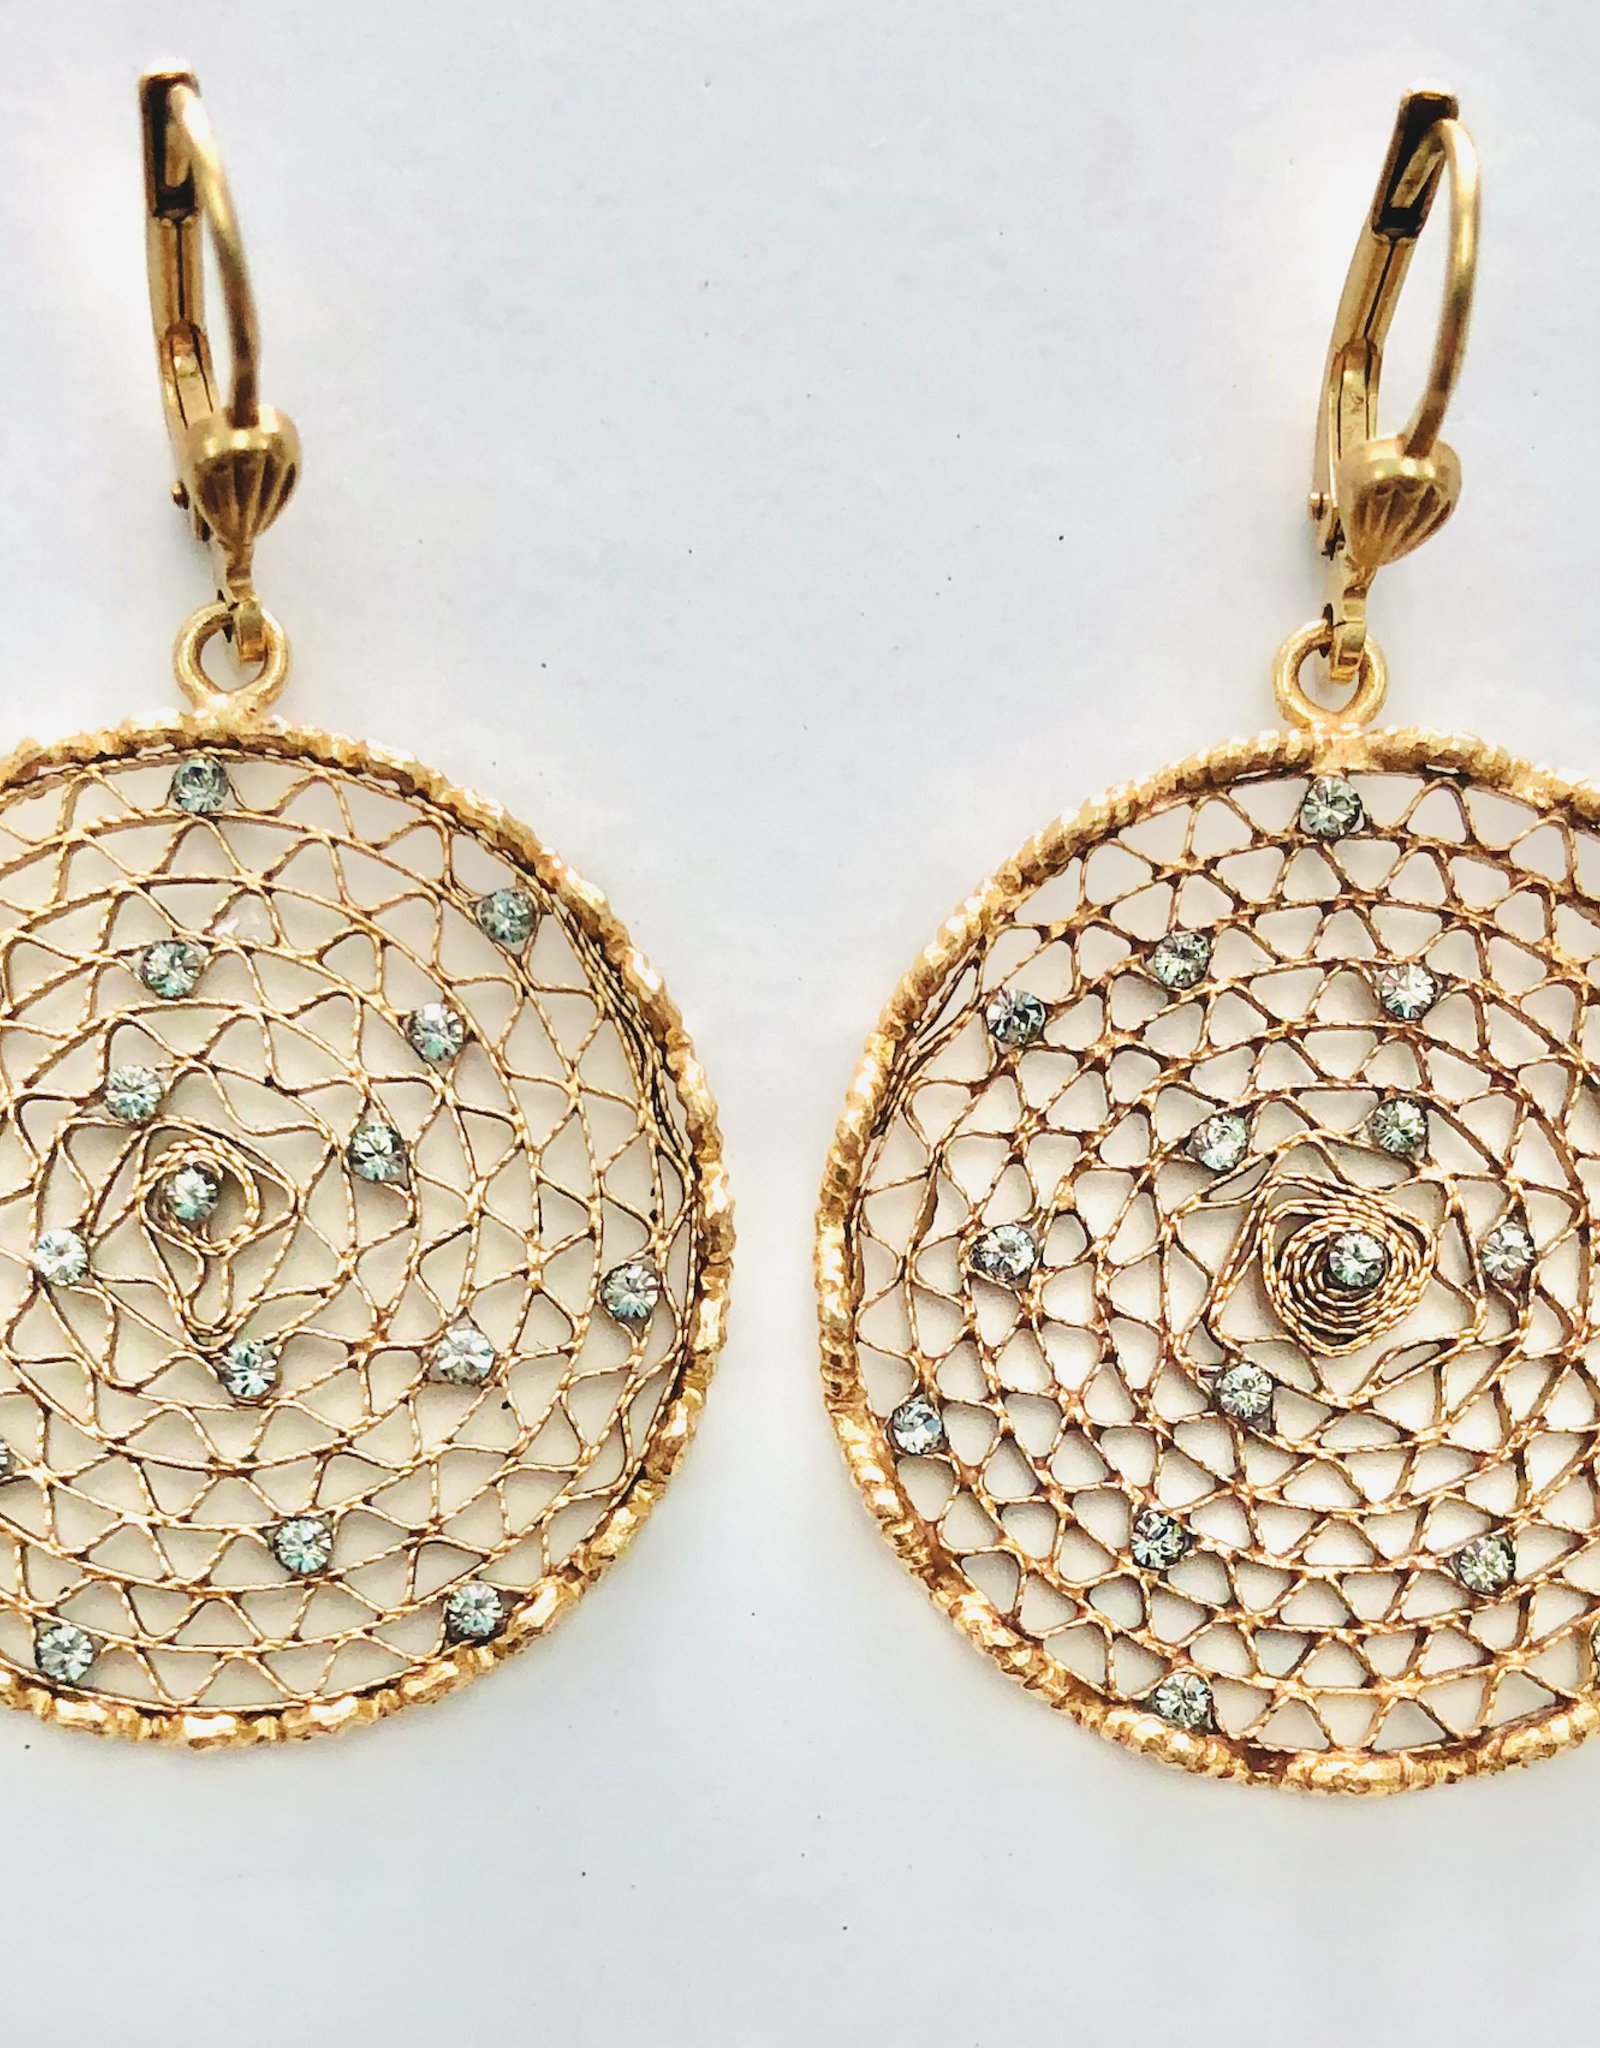 LA VIE PARISIENNE INC EARRING GOLD LACE SMALL WITH CRYSTAL